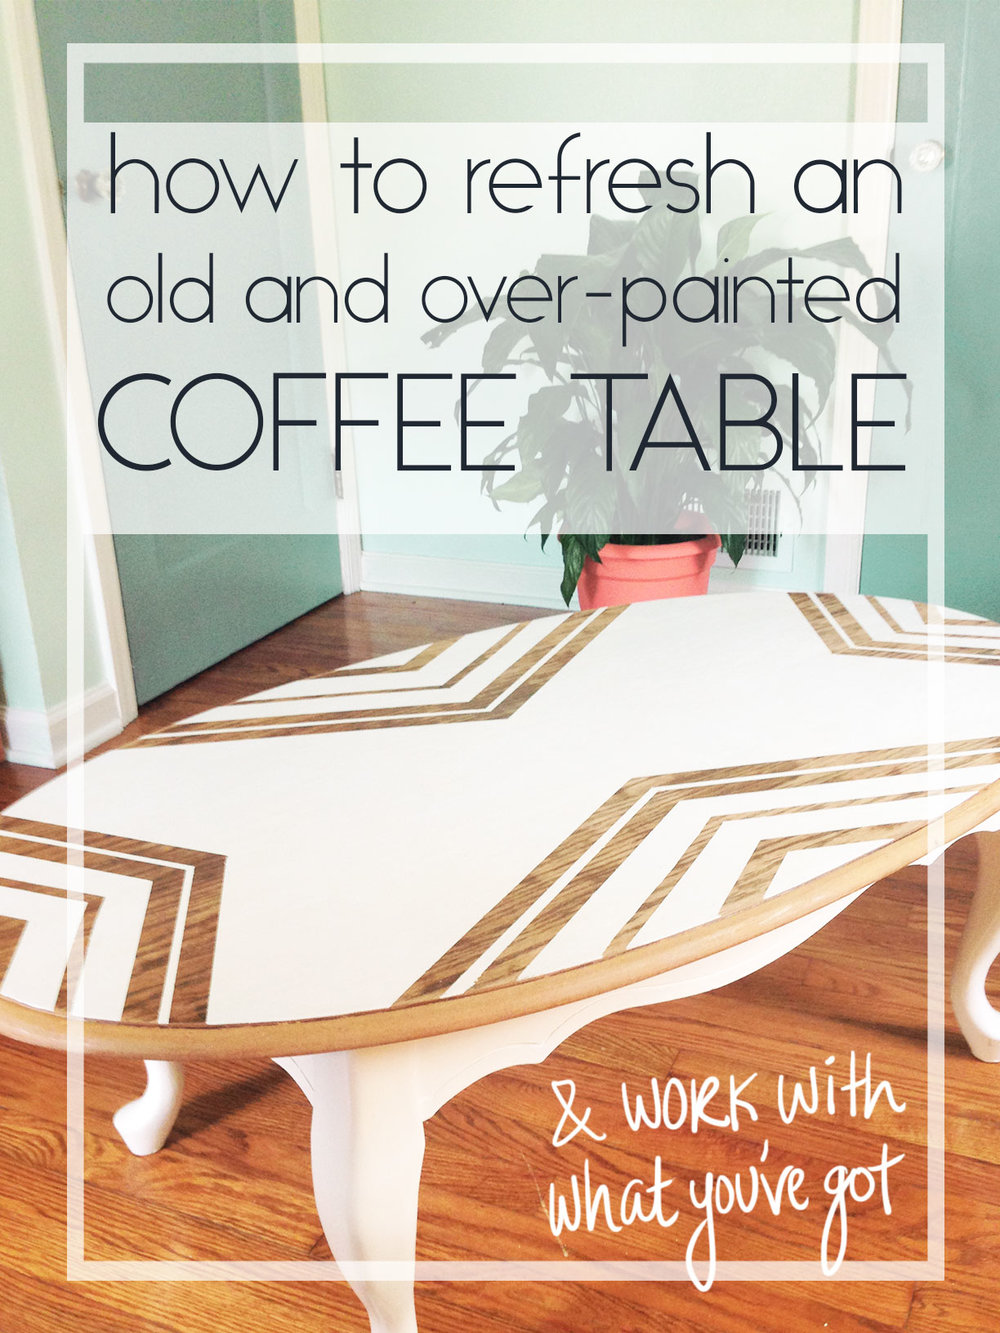 Coffee-Table-Header-Image.jpg